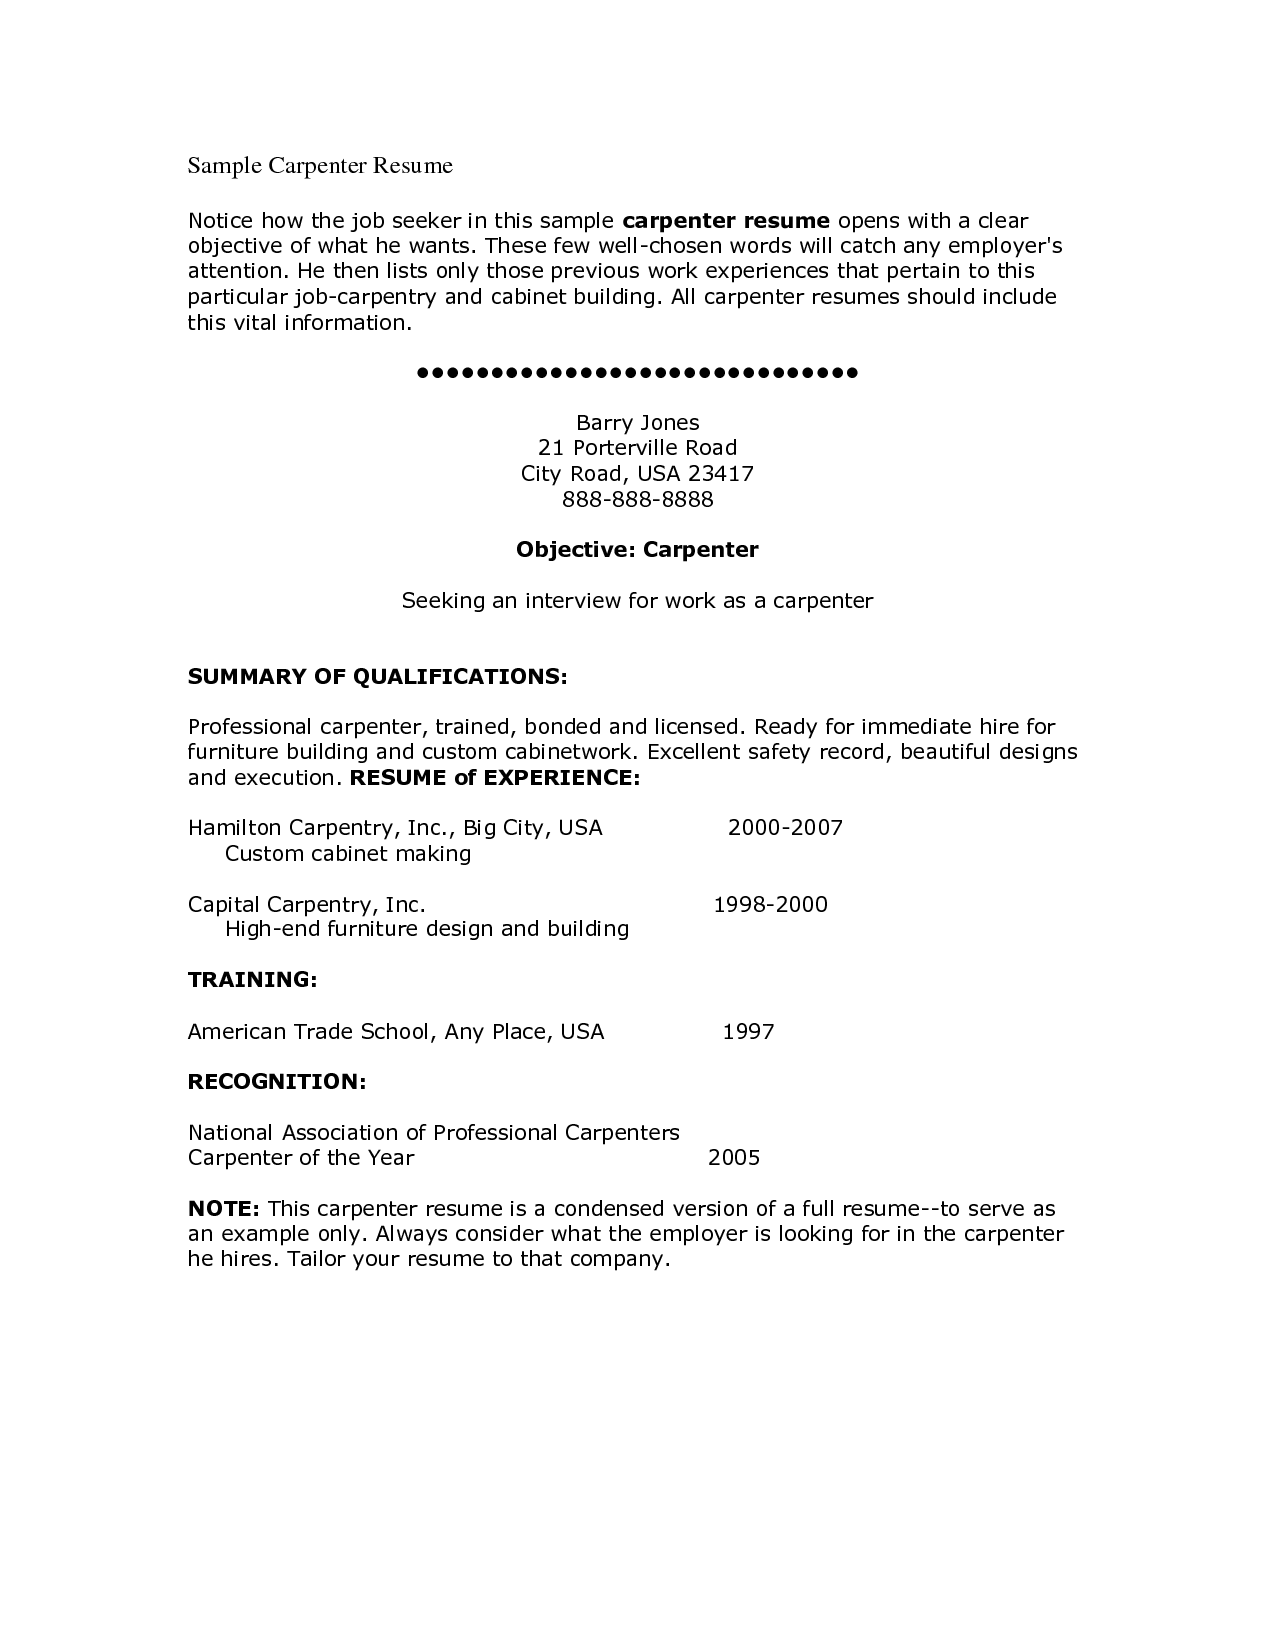 Construction Carpenter Resume Templatesrpenter Job Description For Writing Sample